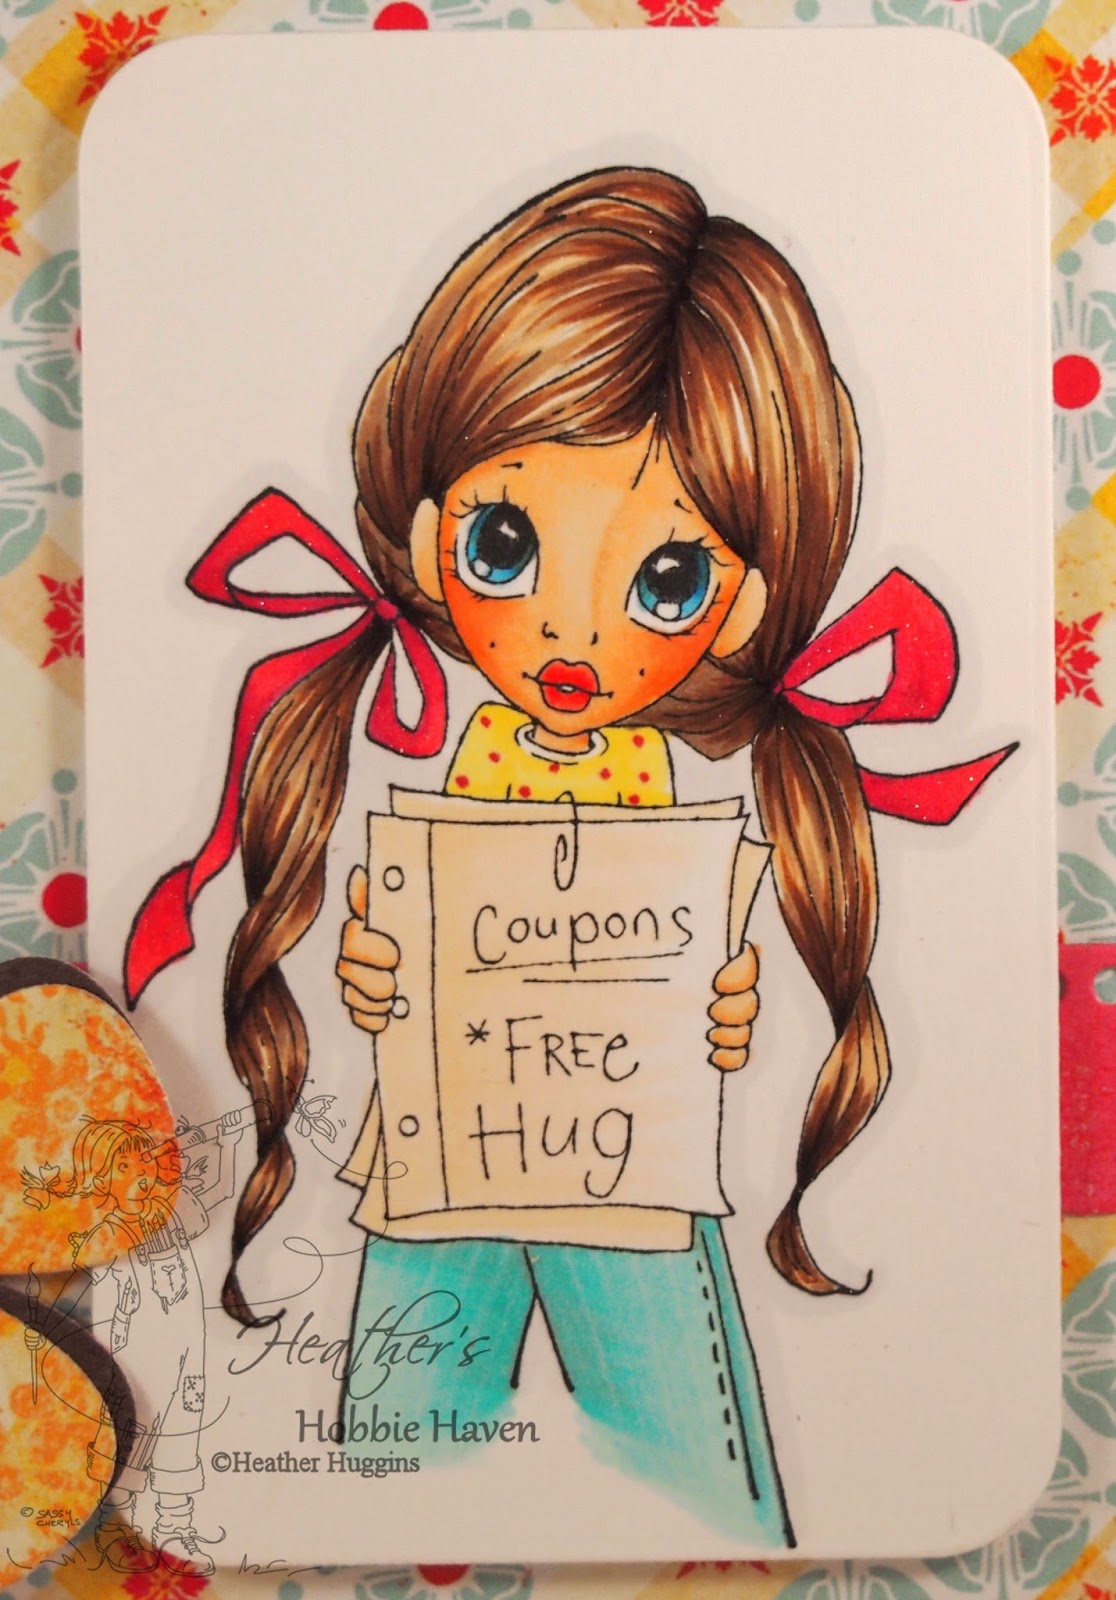 Heather's Hobbie Haven - Free Hug Card Kit